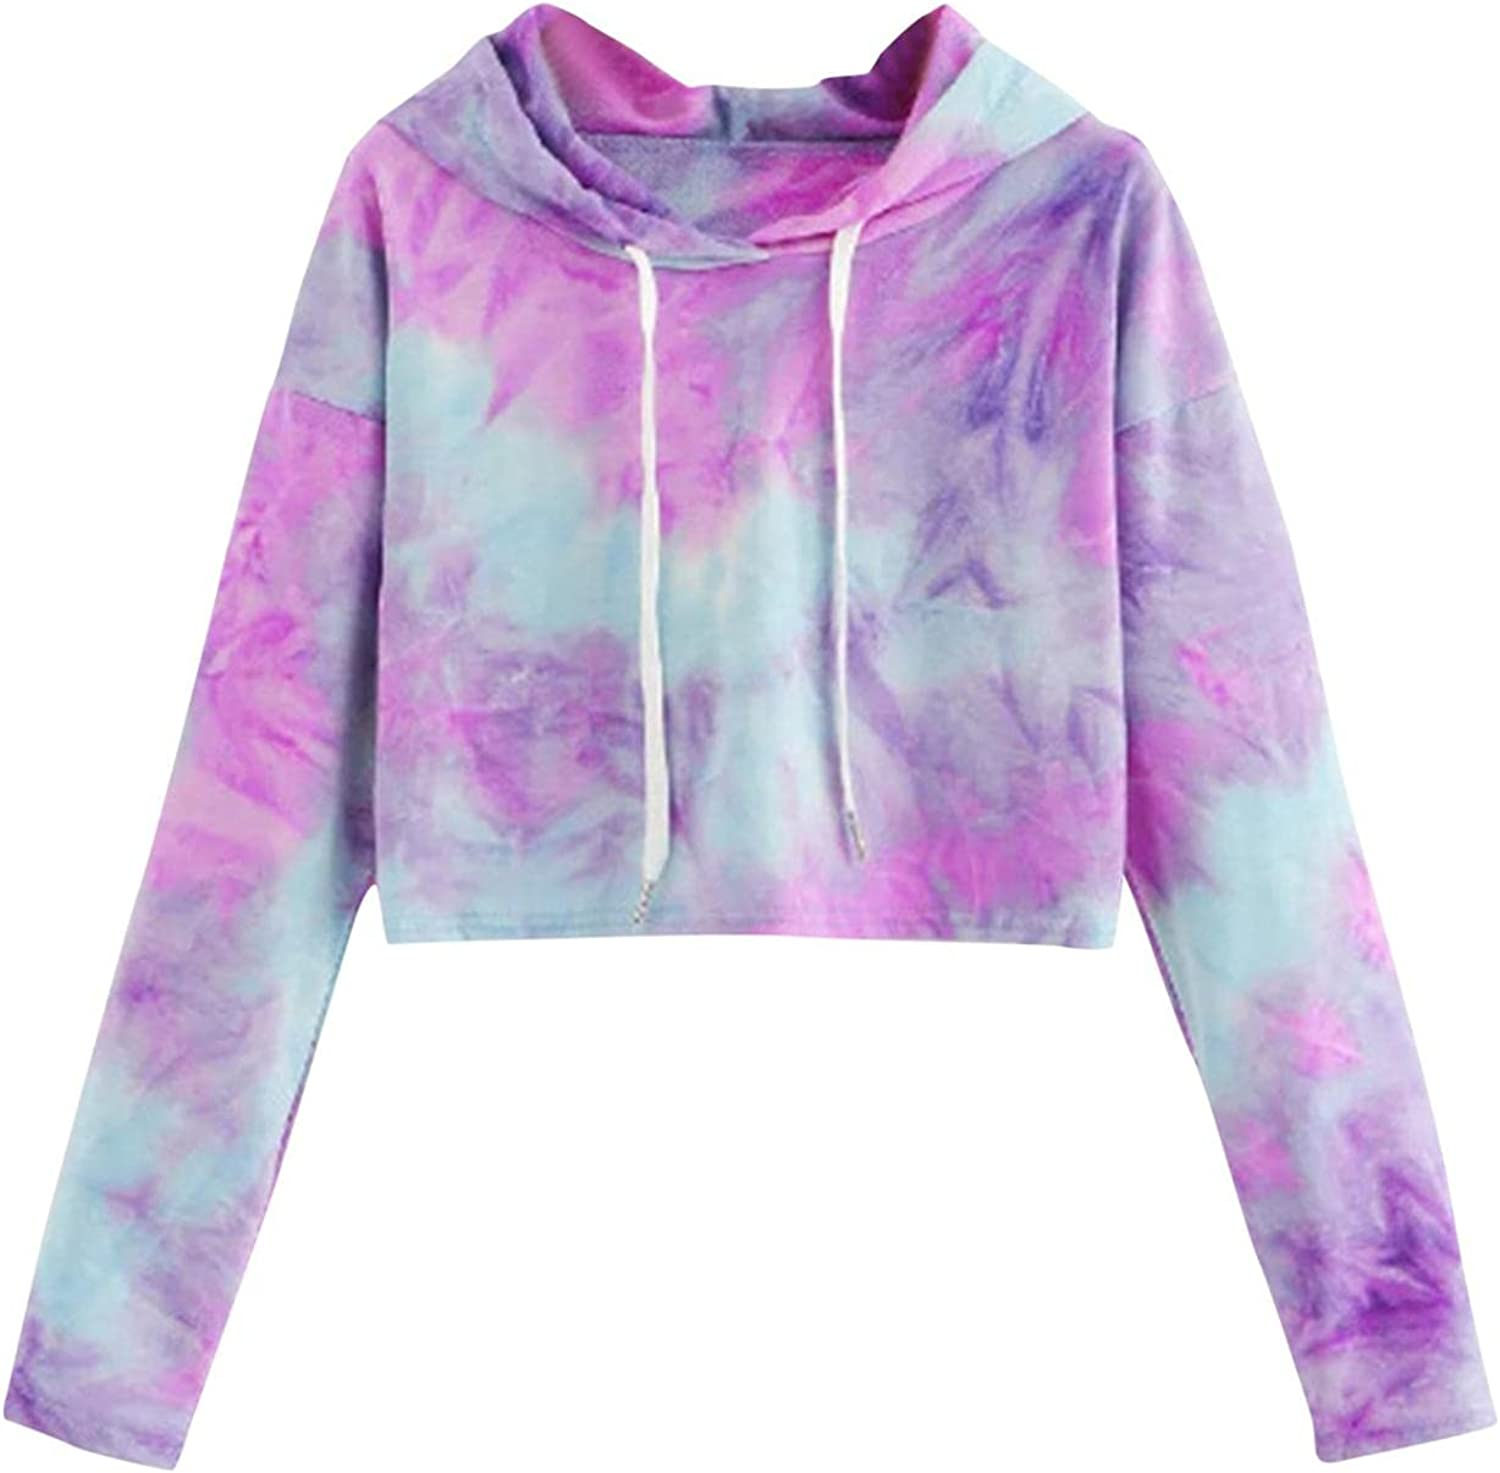 Crop Max 50% OFF Hoodies for Free shipping on posting reviews Women Panokly Teen Dye C Girls Sleeve Tie Long